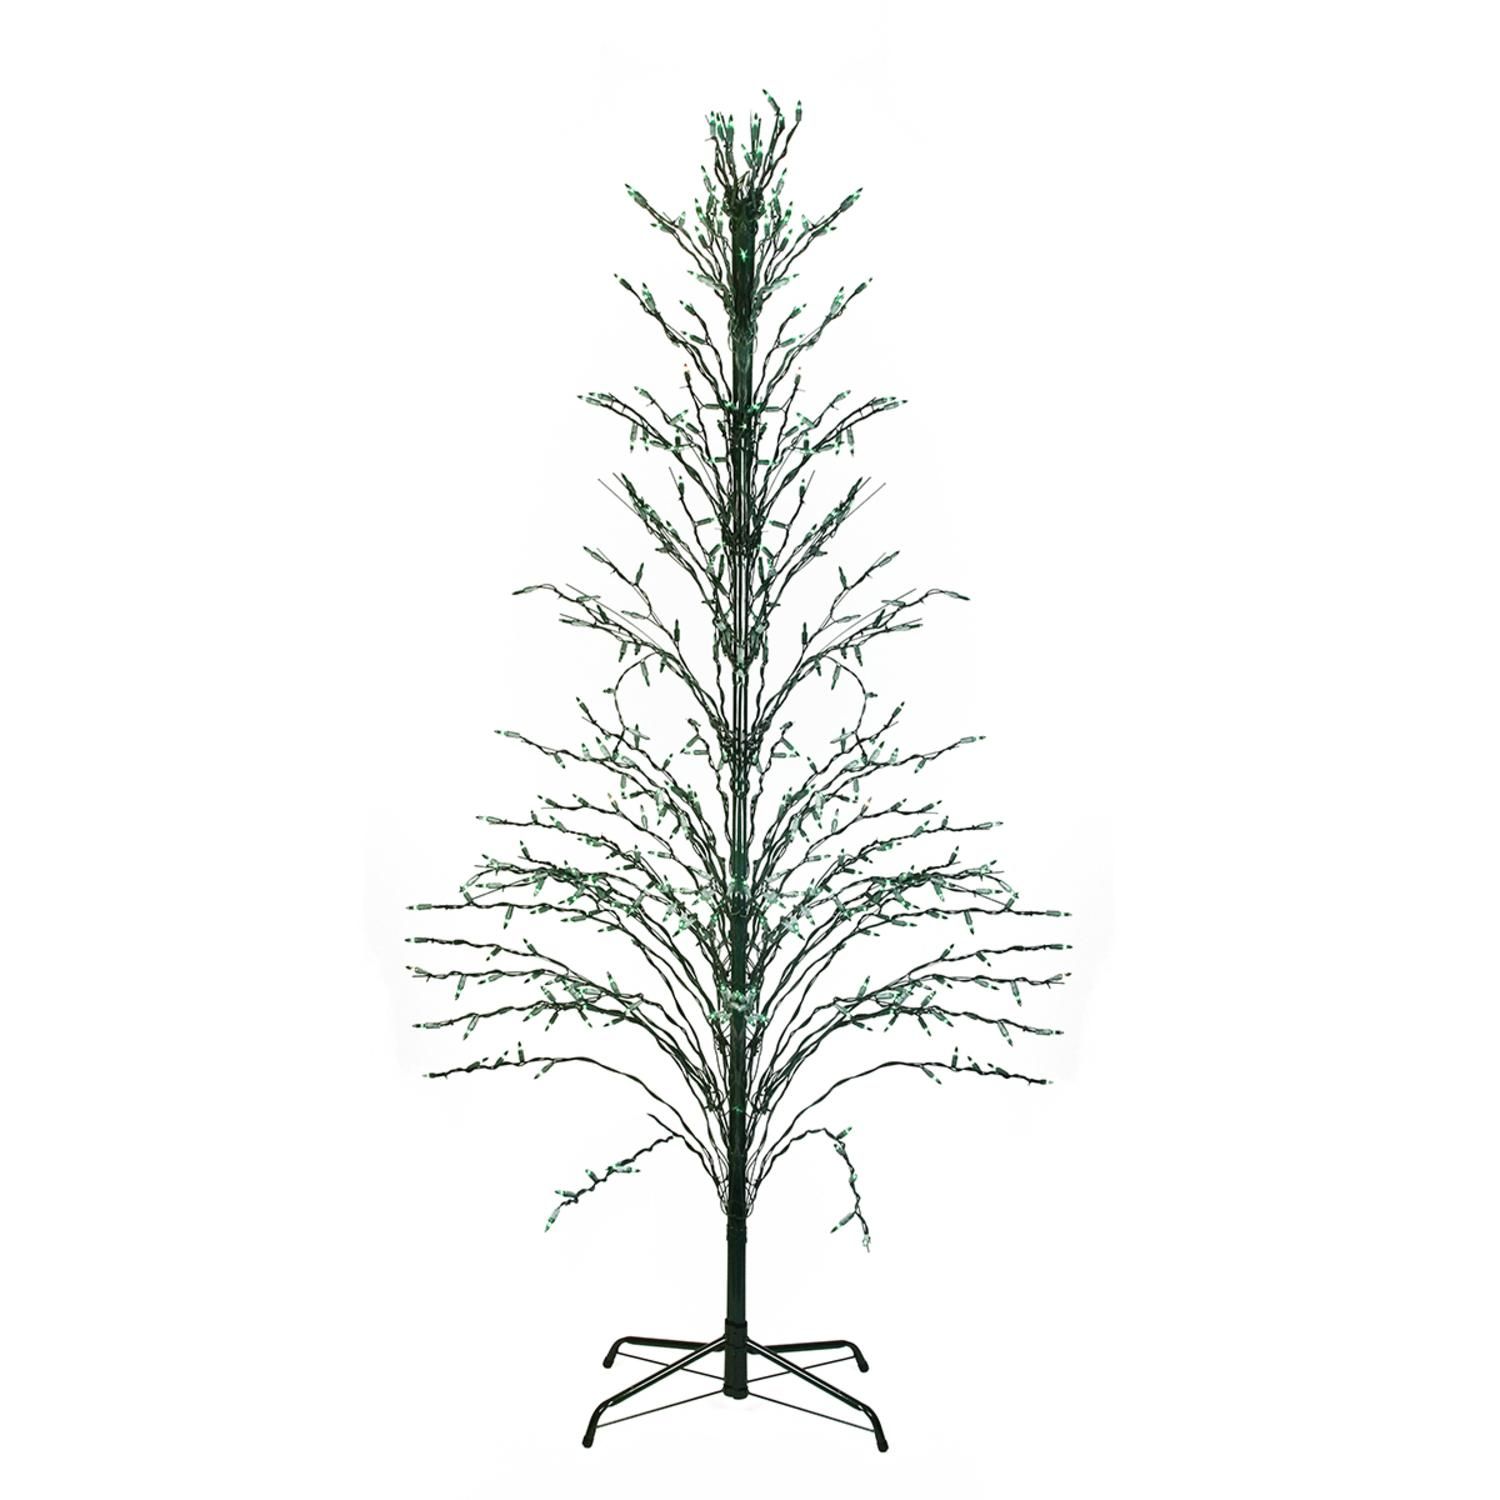 4' Green Lighted Christmas Cascade Twig Tree Outdoor Yard Art Decoration - Green Lights